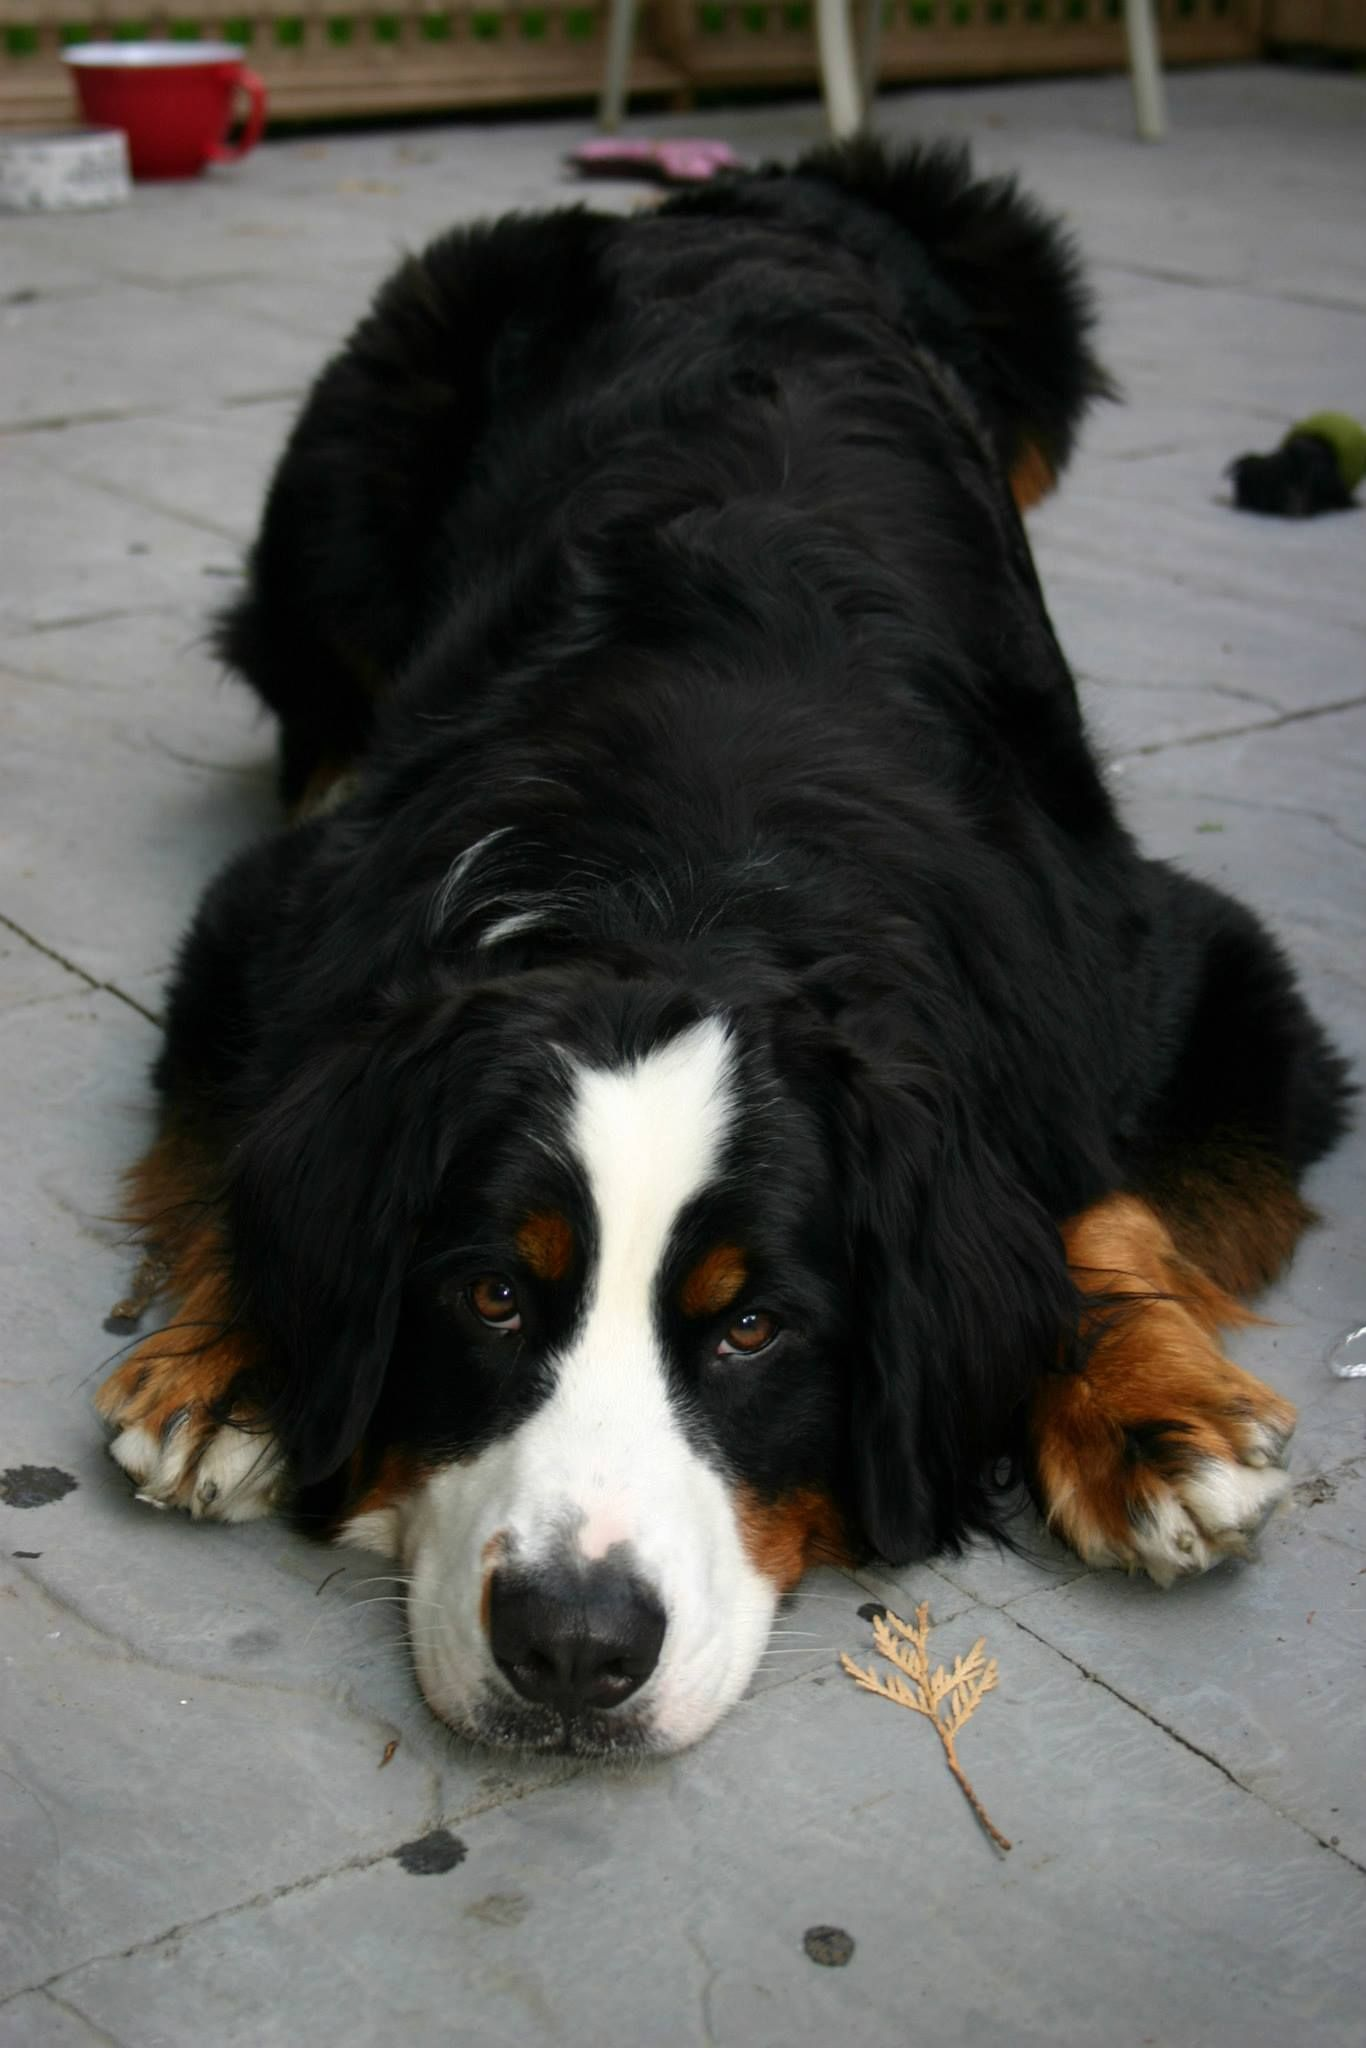 Miley, Bernese Mountain Dog, now full grown  weighing 95 lbs!!